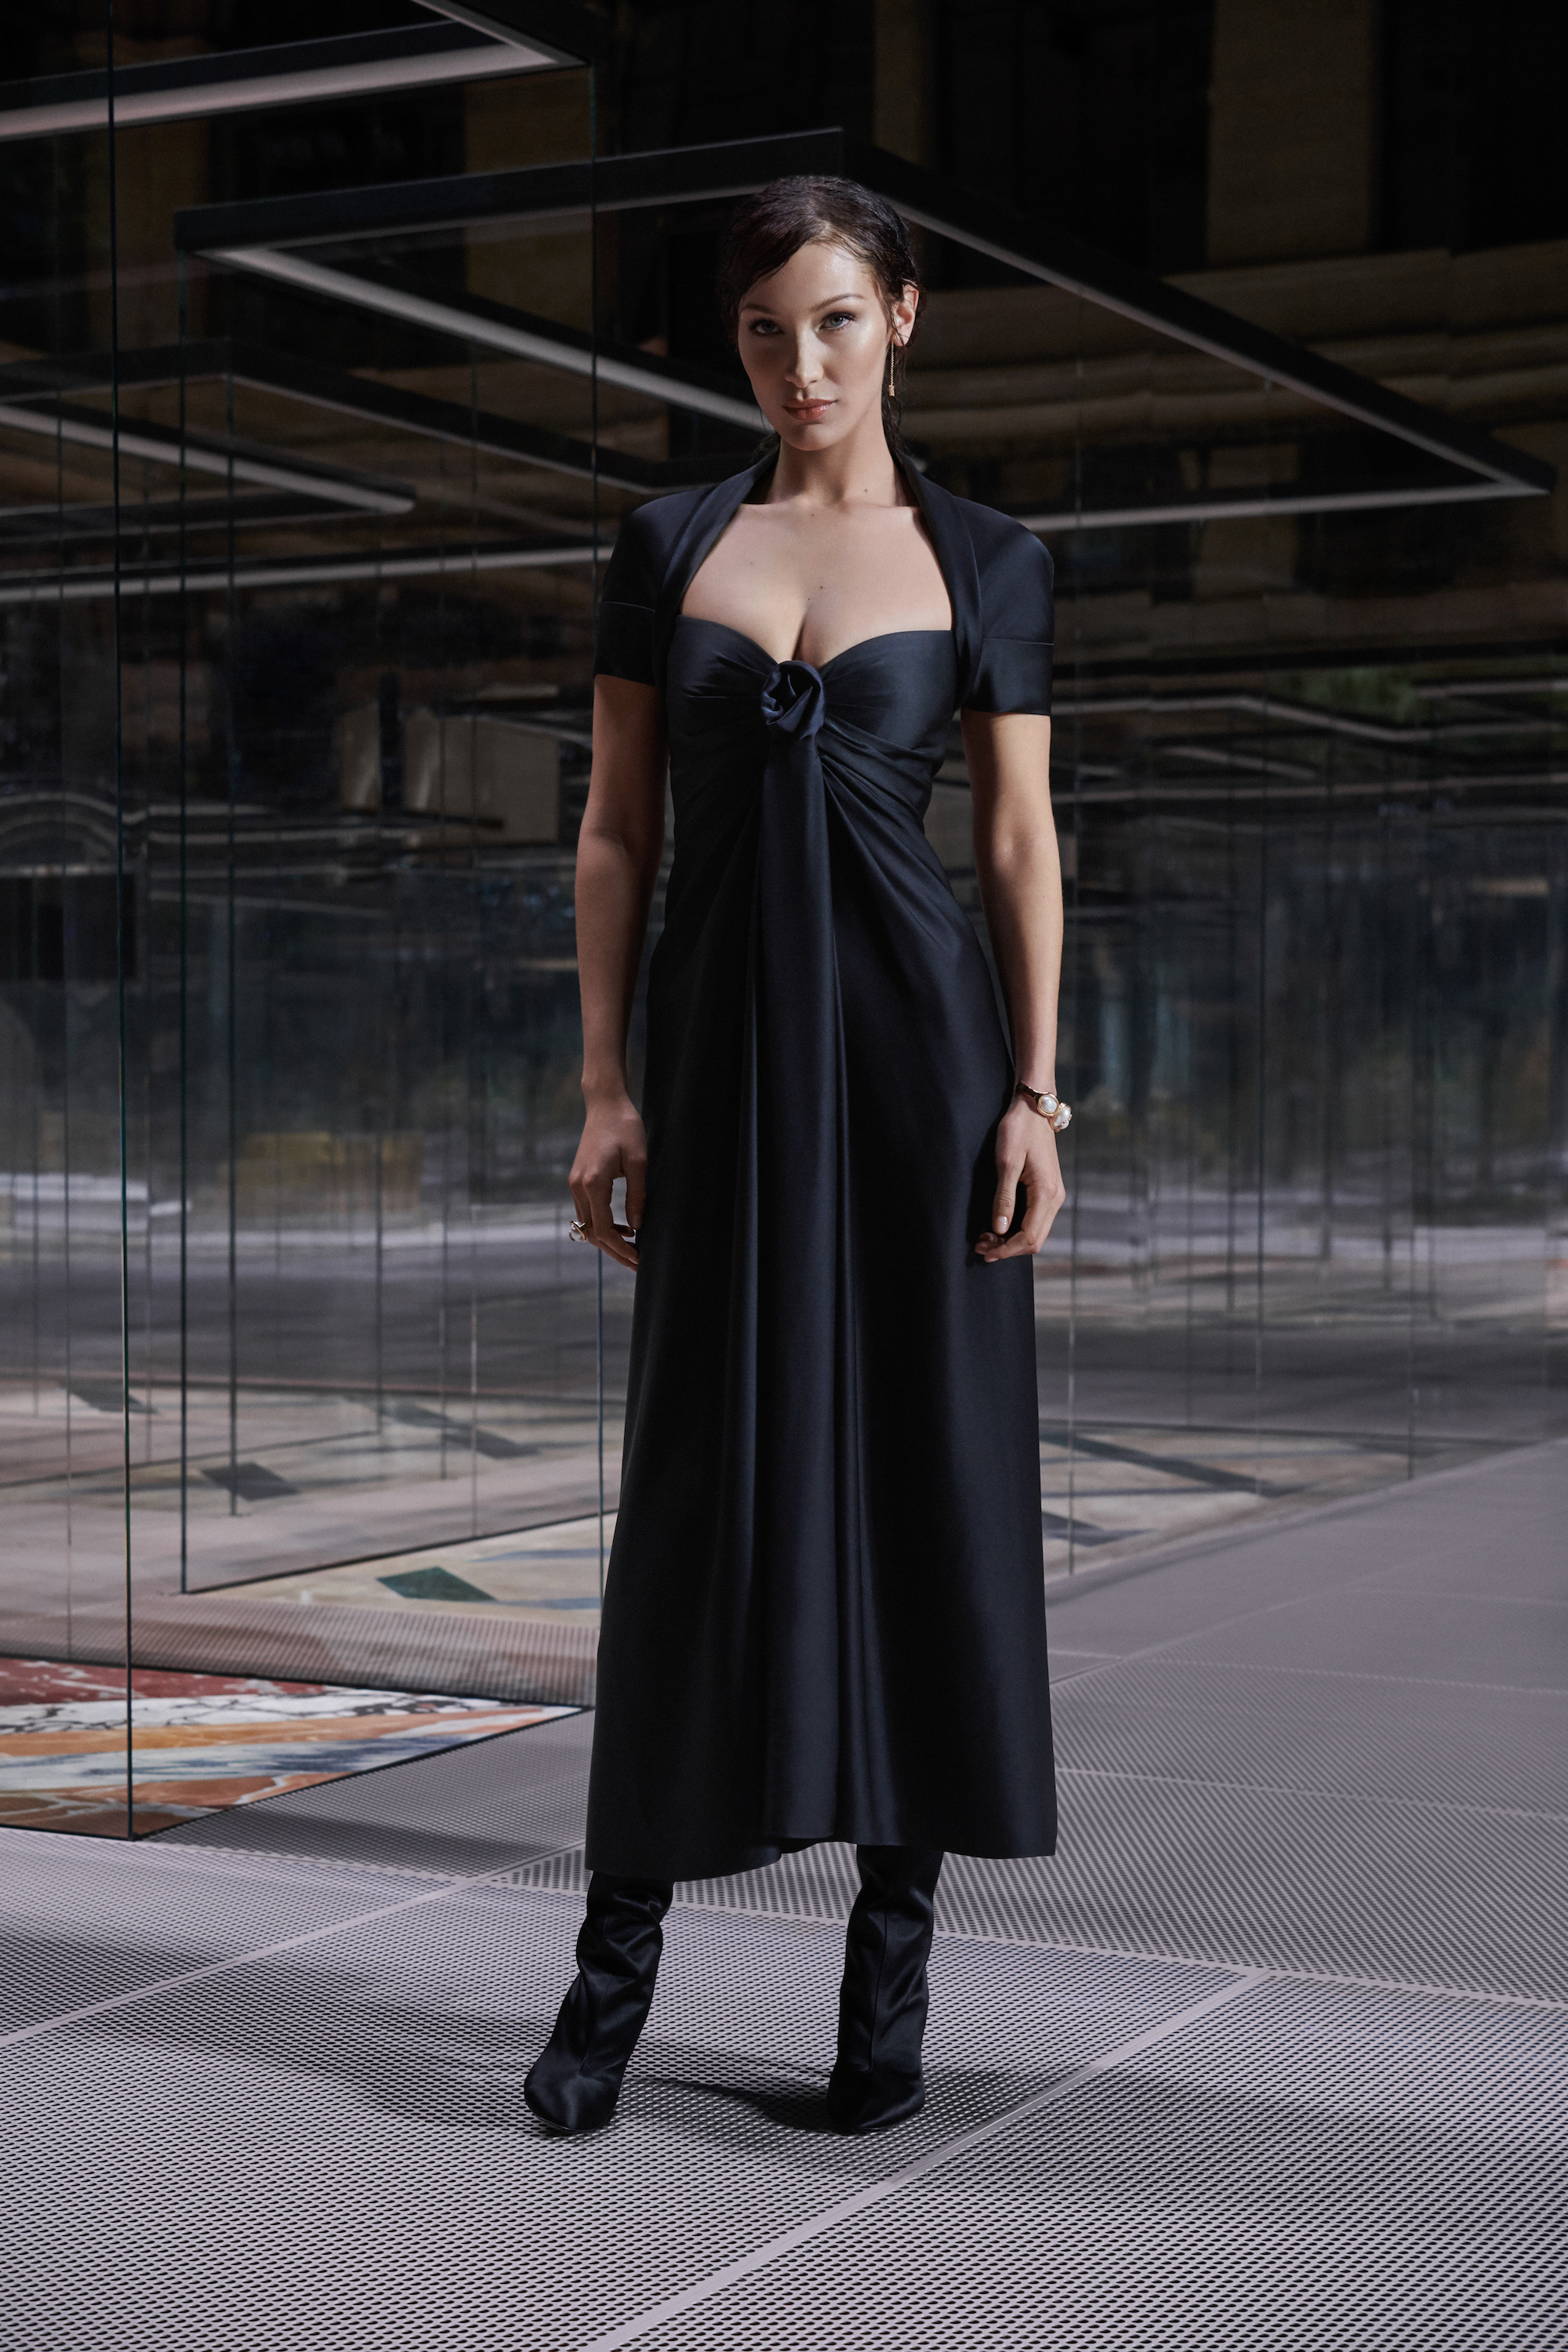 Fendi limited edition capsule collection Bella Hadid black heartline dress